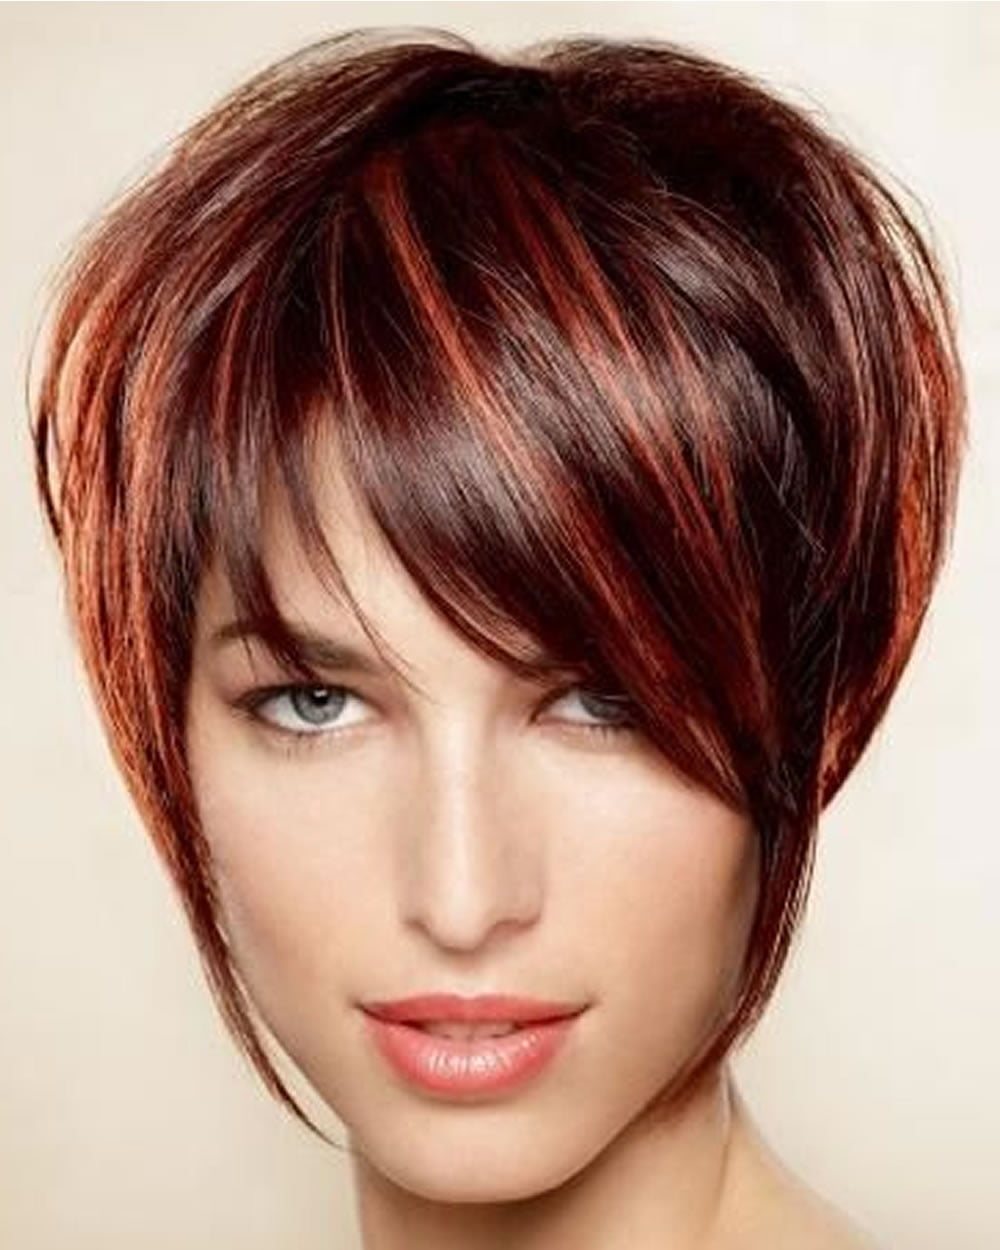 http://www.hairstyleslife.com/wp-content/uploads/2017/11/2018-Short-Hair-Ideas-Latest-Hair-Colors-and-Designs-for-Ladies-5.jpg